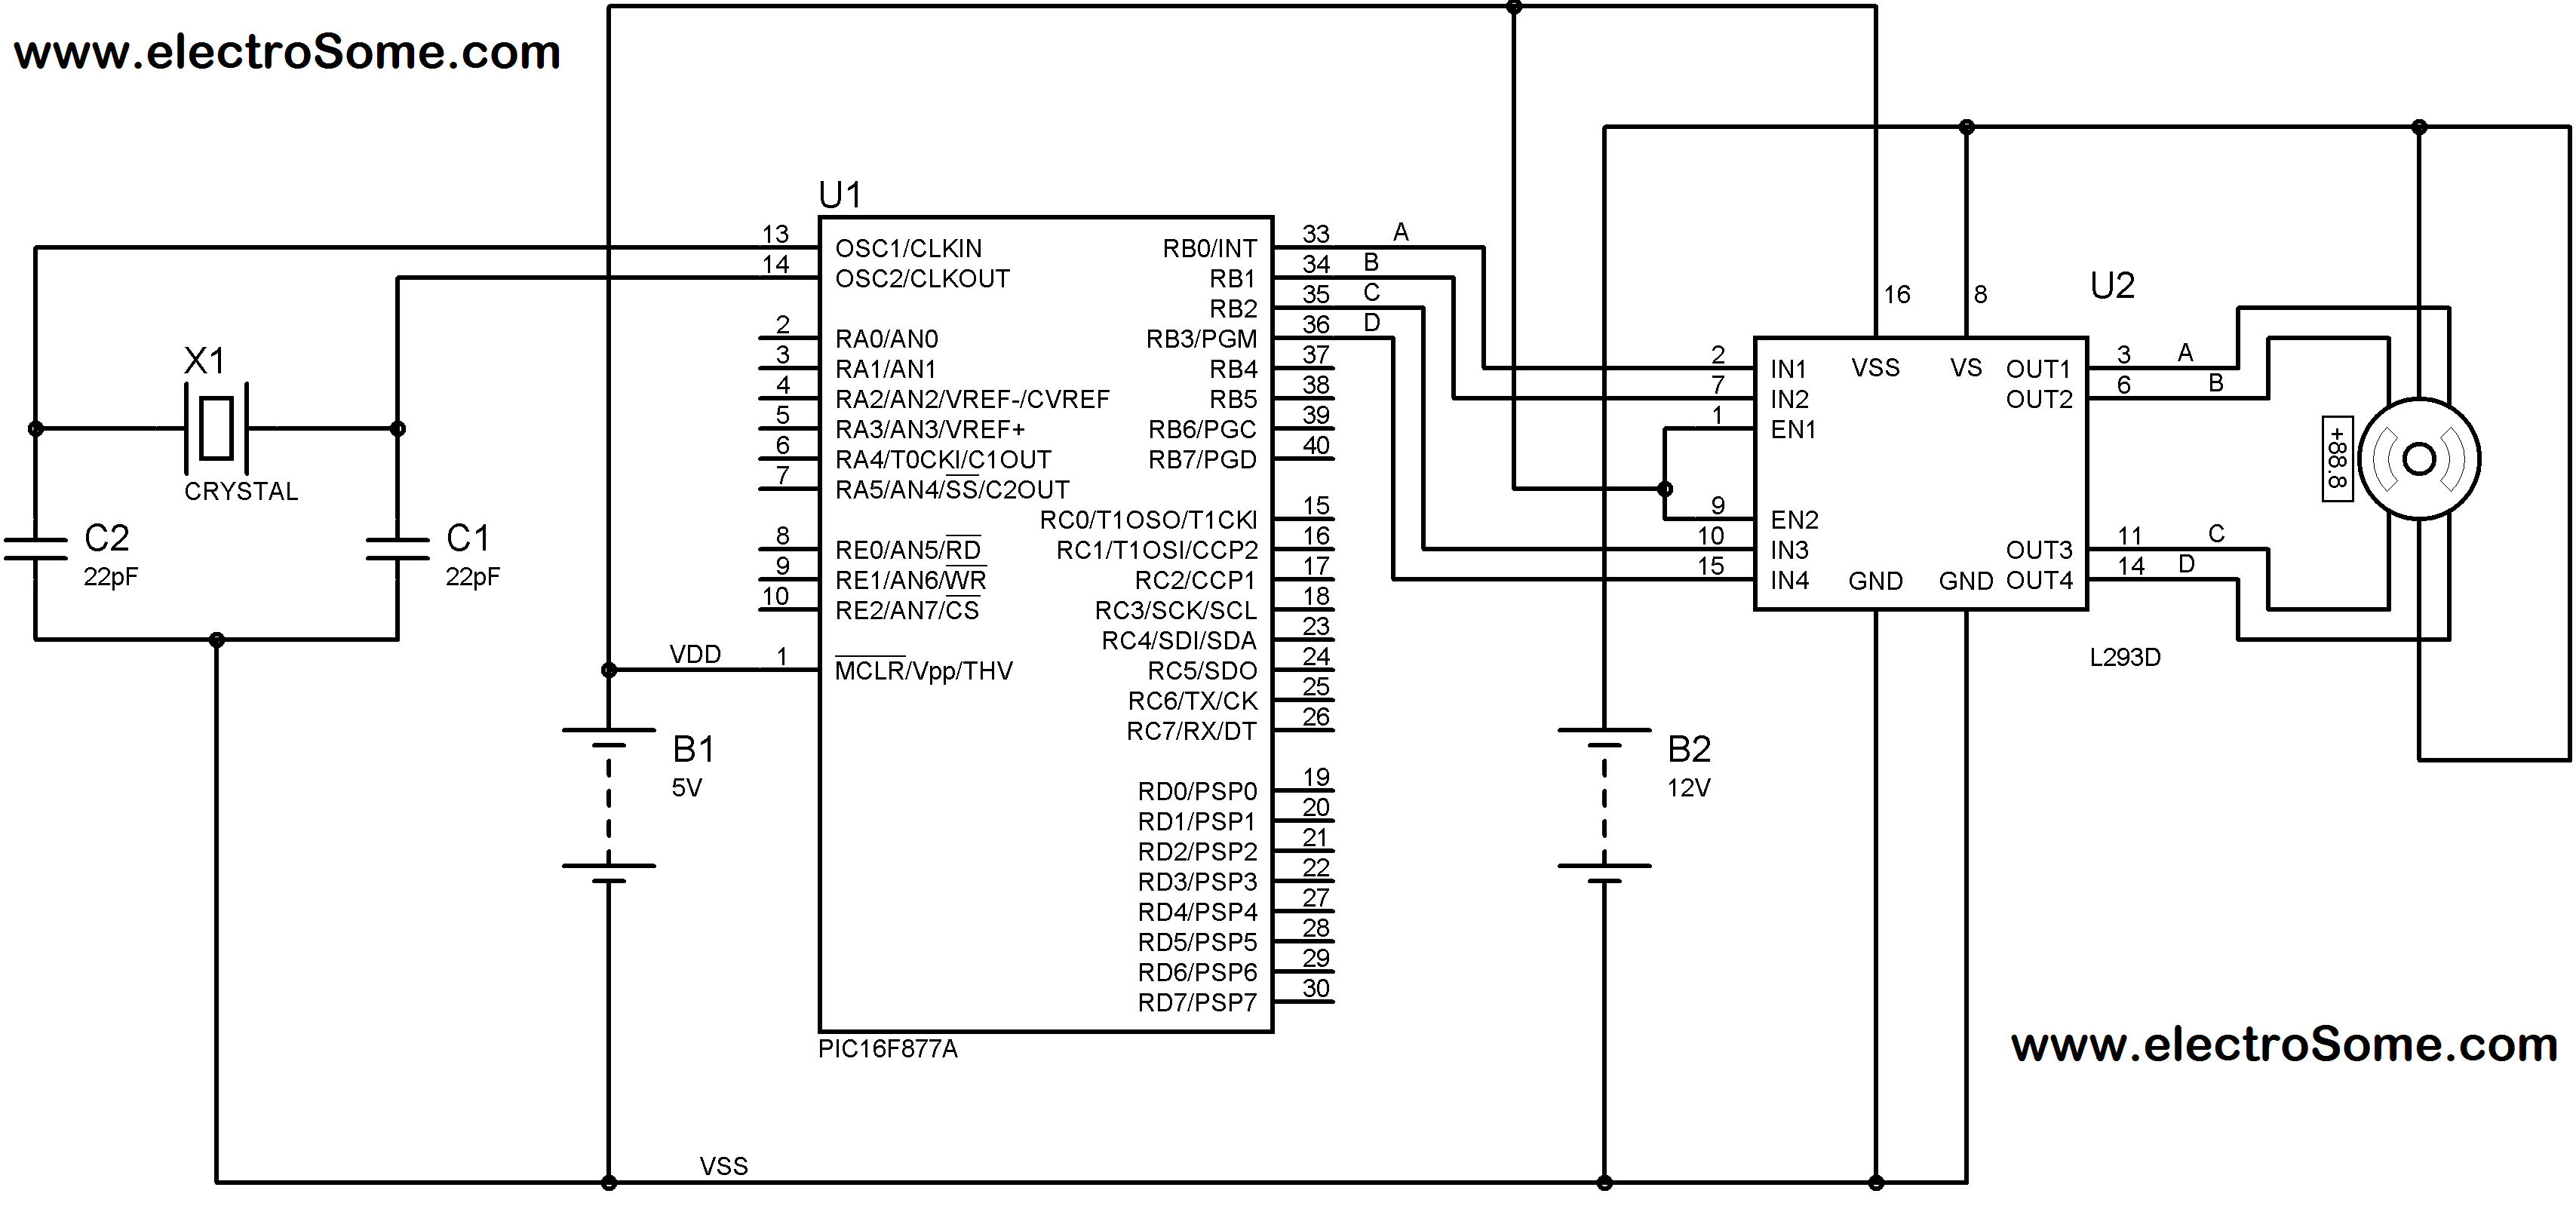 Interfacing Stepper Motor With Pic Microcontroller Mikroc Pickit 3 Circuit Diagram Unipolar Using L293d